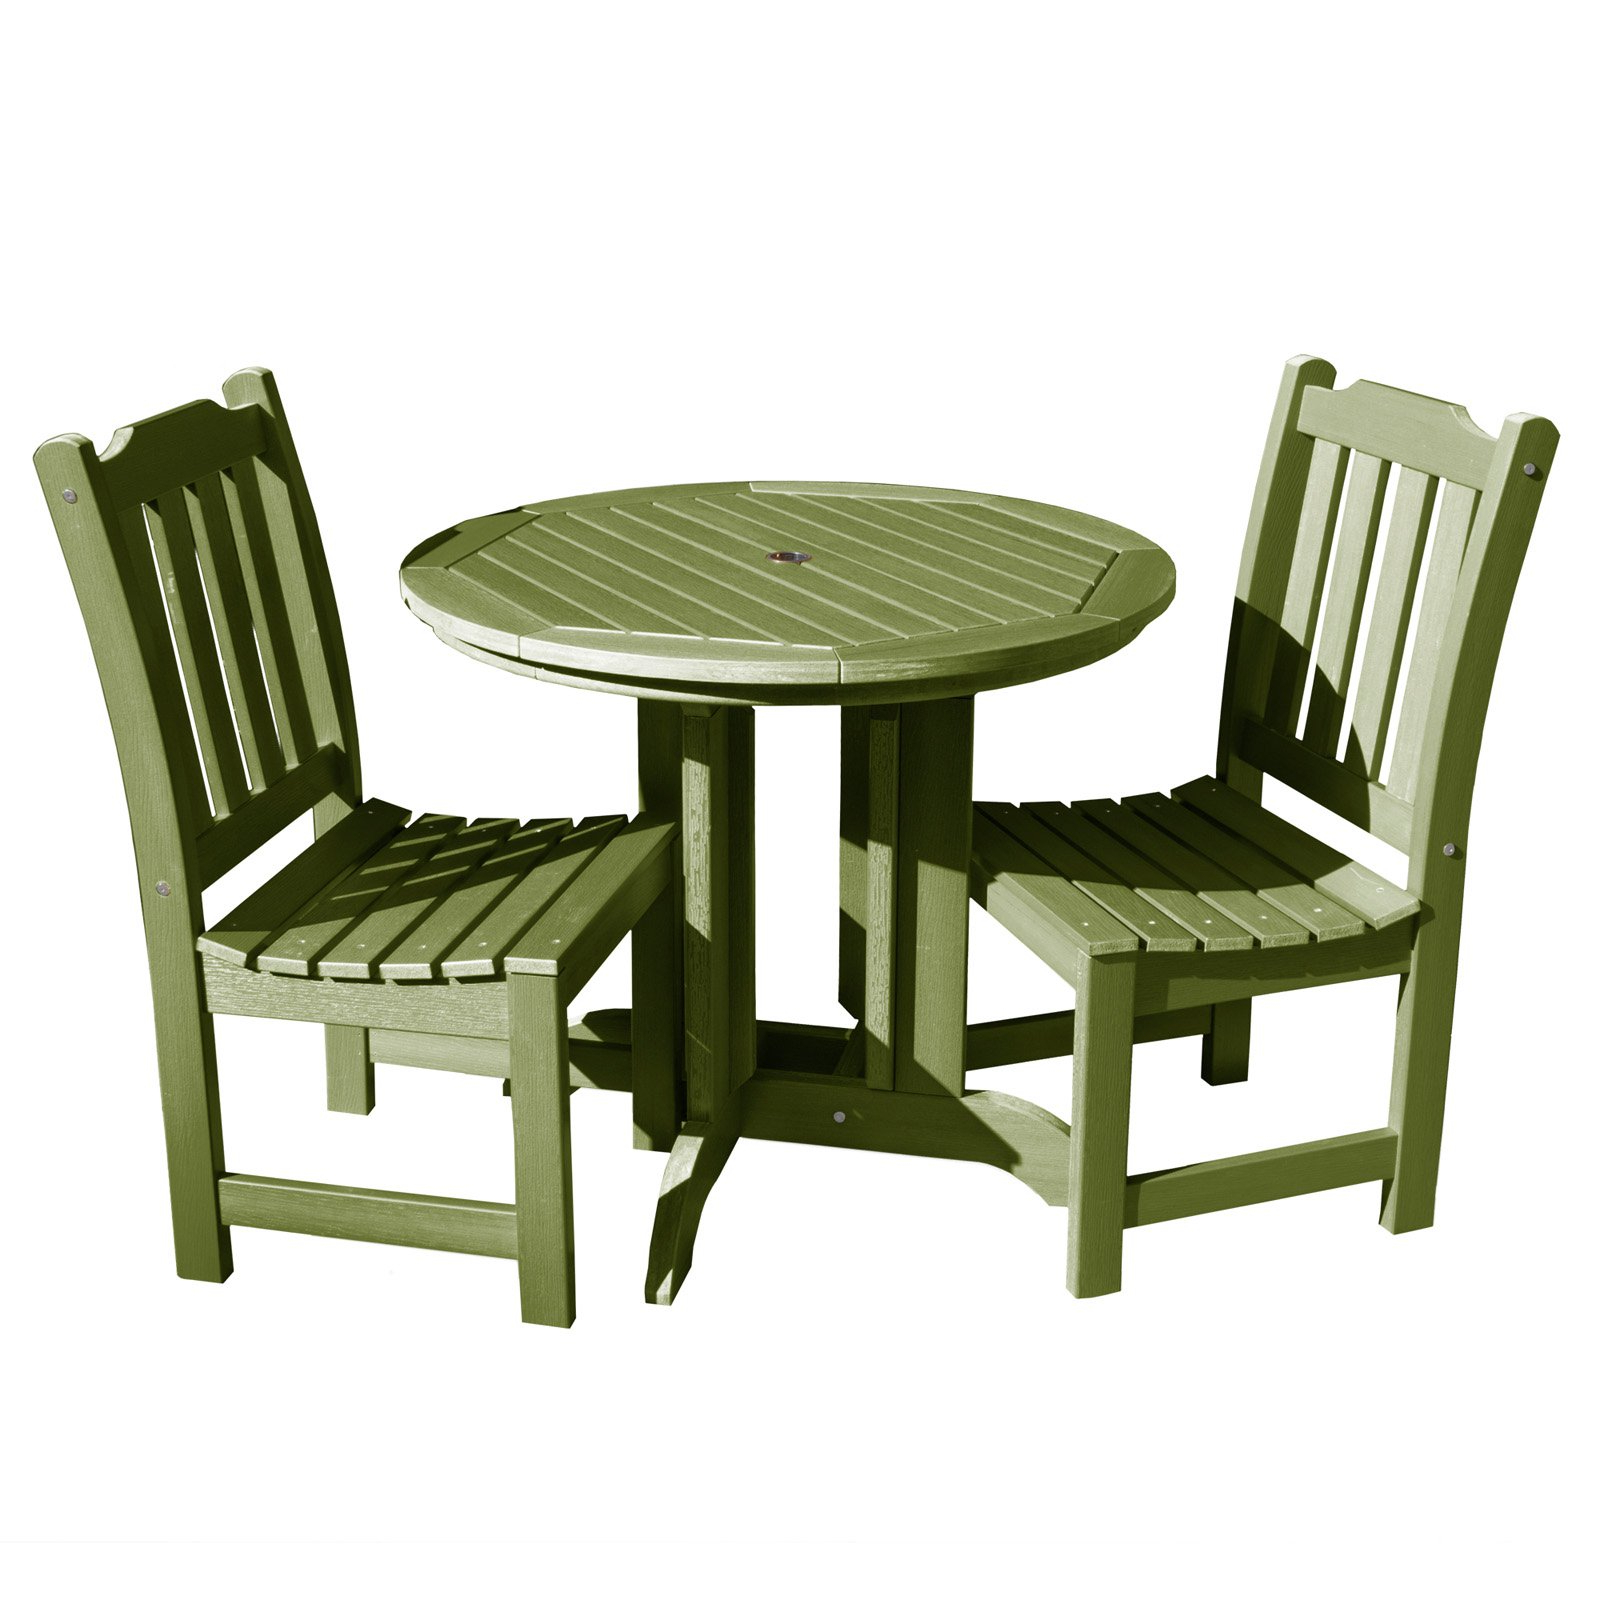 Outdoor Highwood Lehigh Recycled Plastic 3 Piece Round Patio Bistro Inside Famous Saintcroix 3 Piece Dining Sets (View 18 of 20)